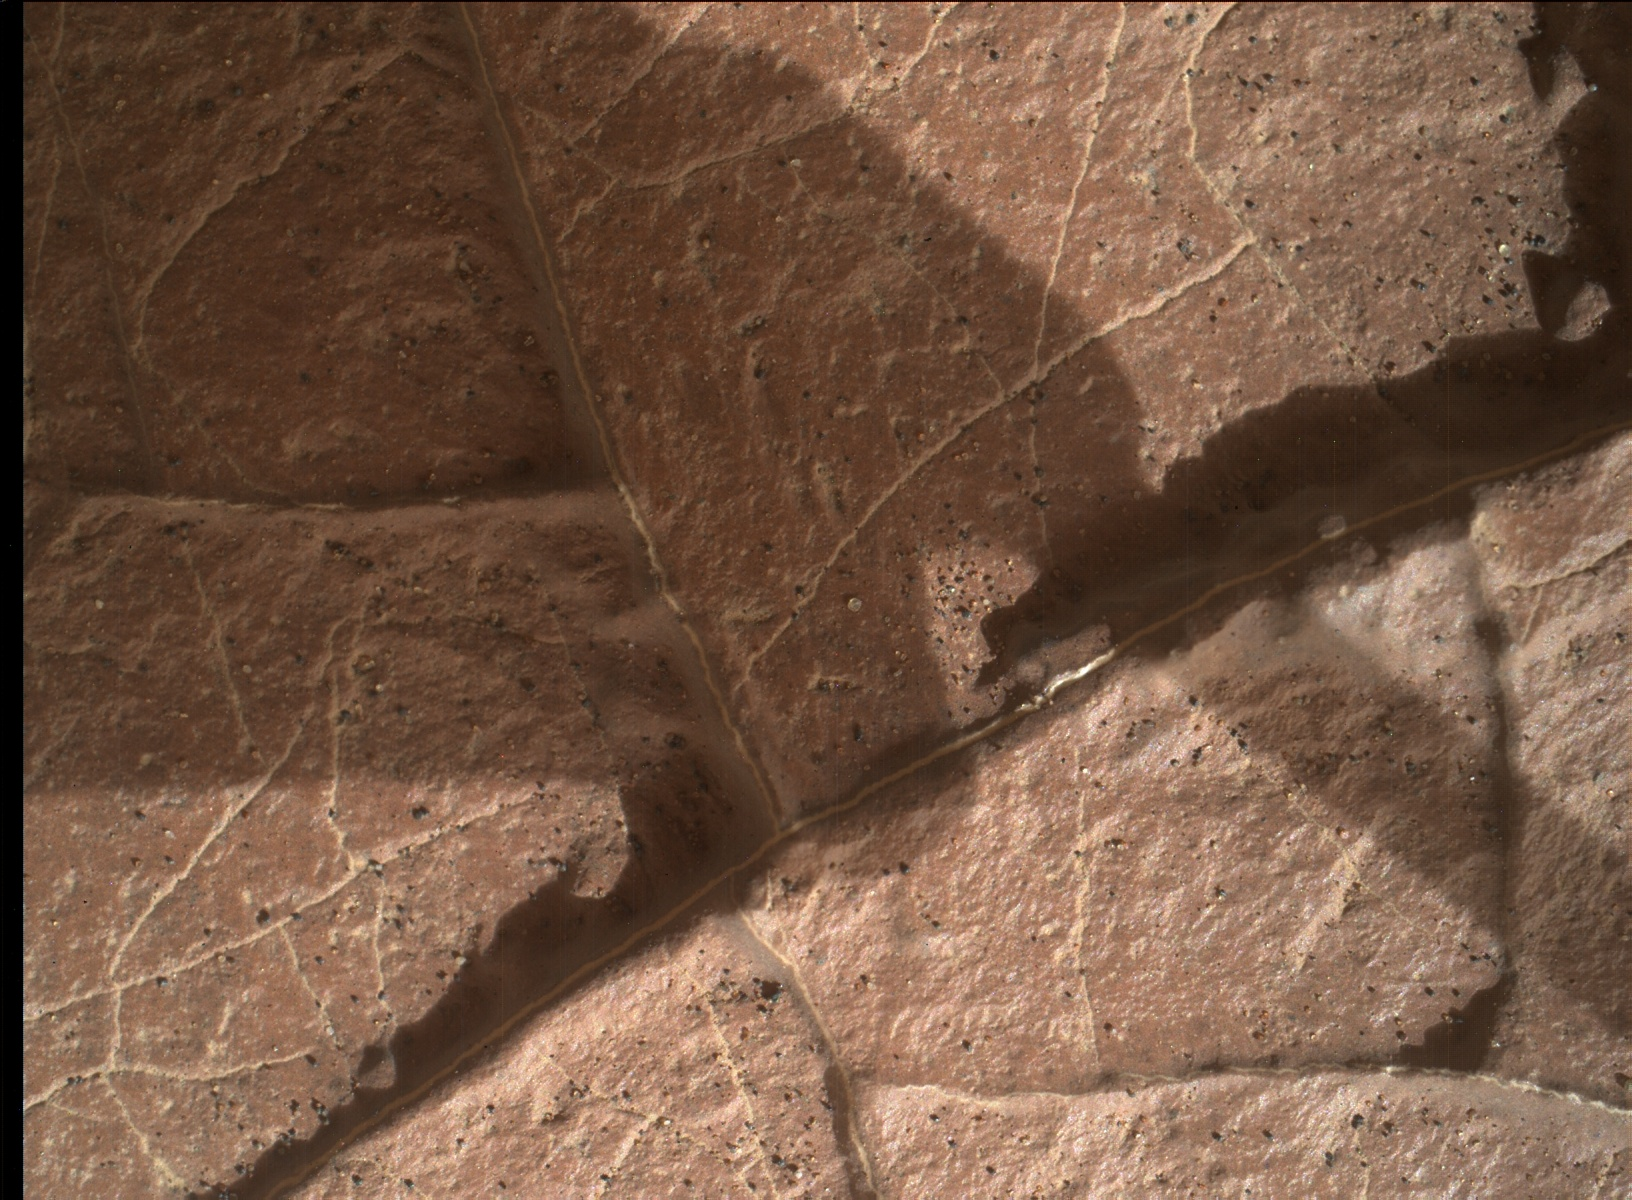 Nasa's Mars rover Curiosity acquired this image using its Mars Hand Lens Imager (MAHLI) on Sol 1566